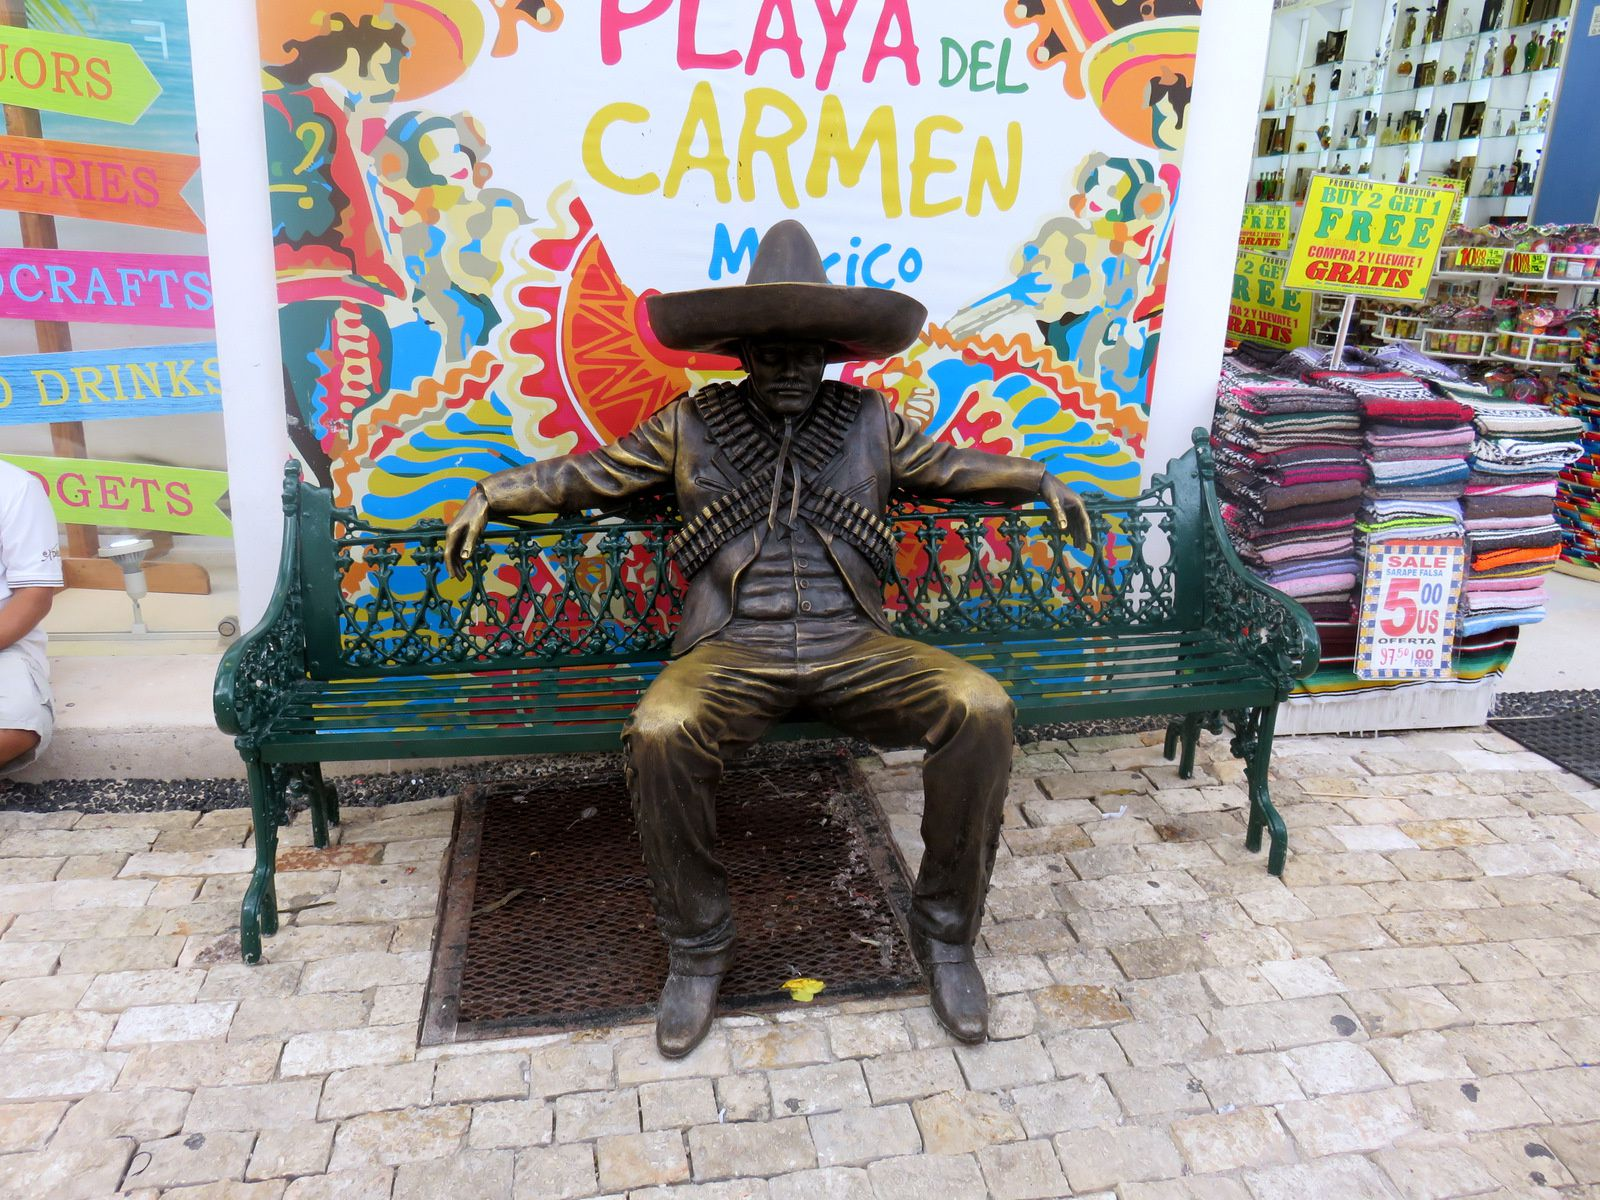 Avenue Benito Juarez, Playa del Carmen (Mexique)